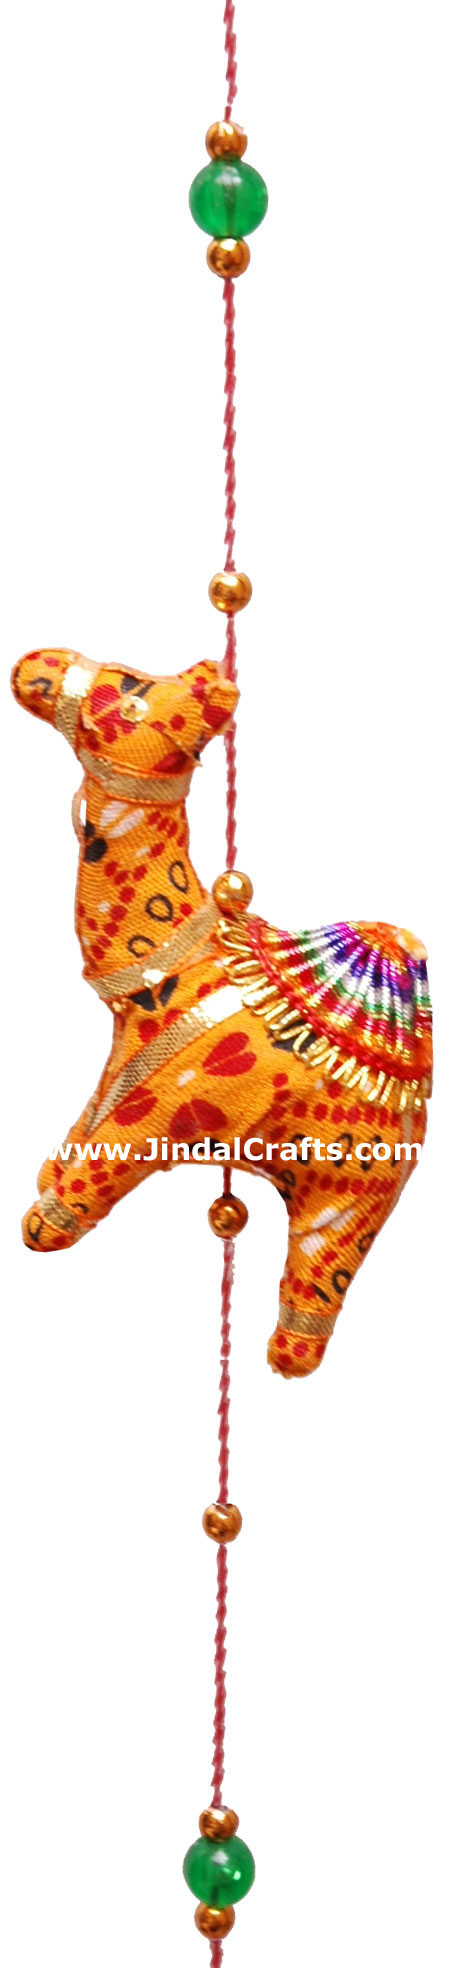 Hanging Handmade Home Door Decoration From India